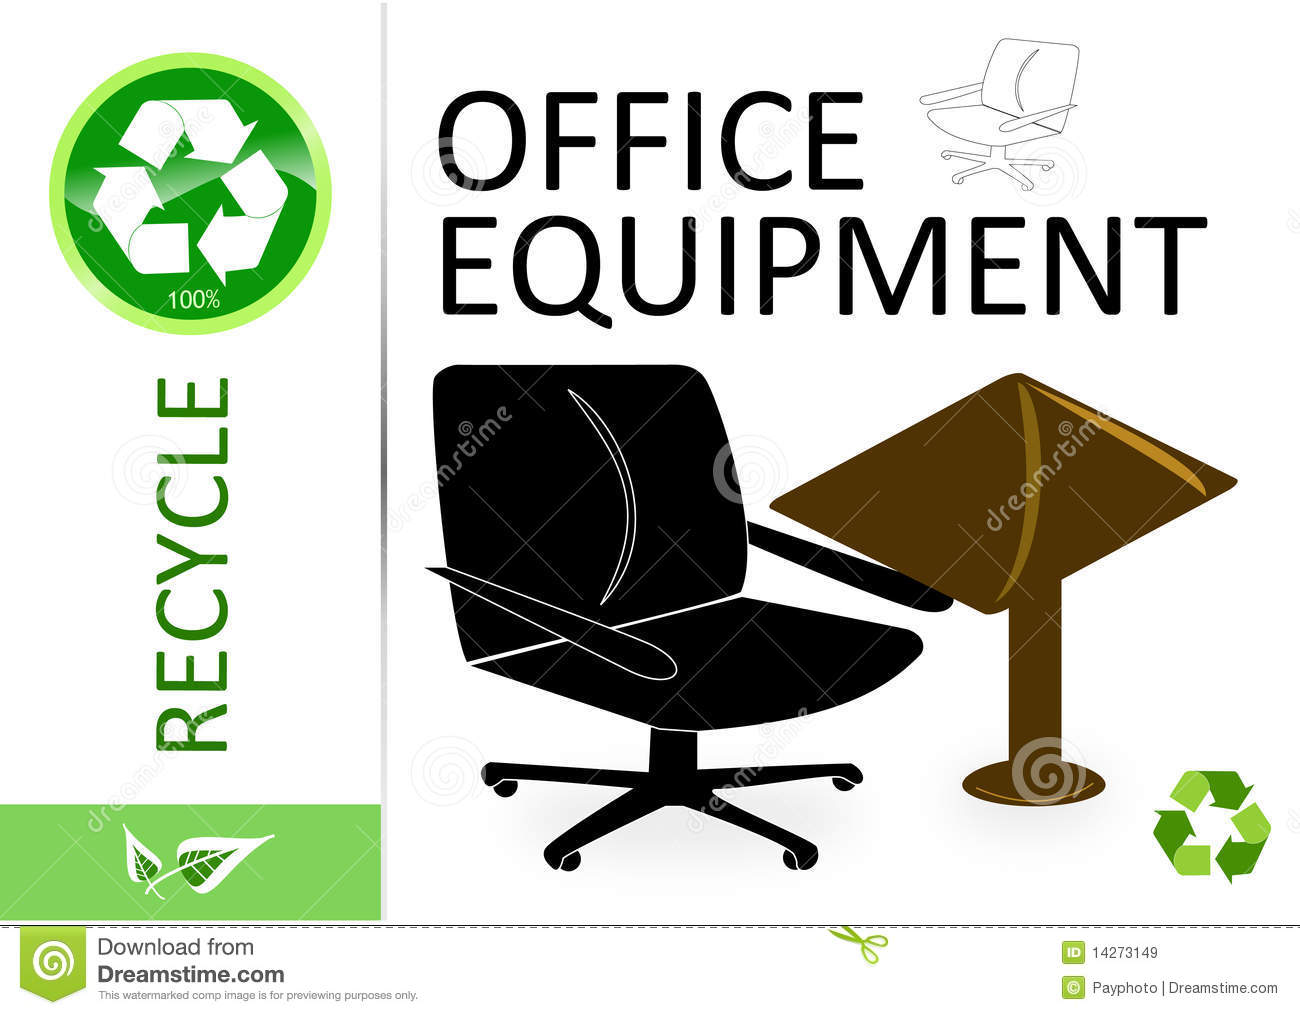 free office equipment clipart - photo #34